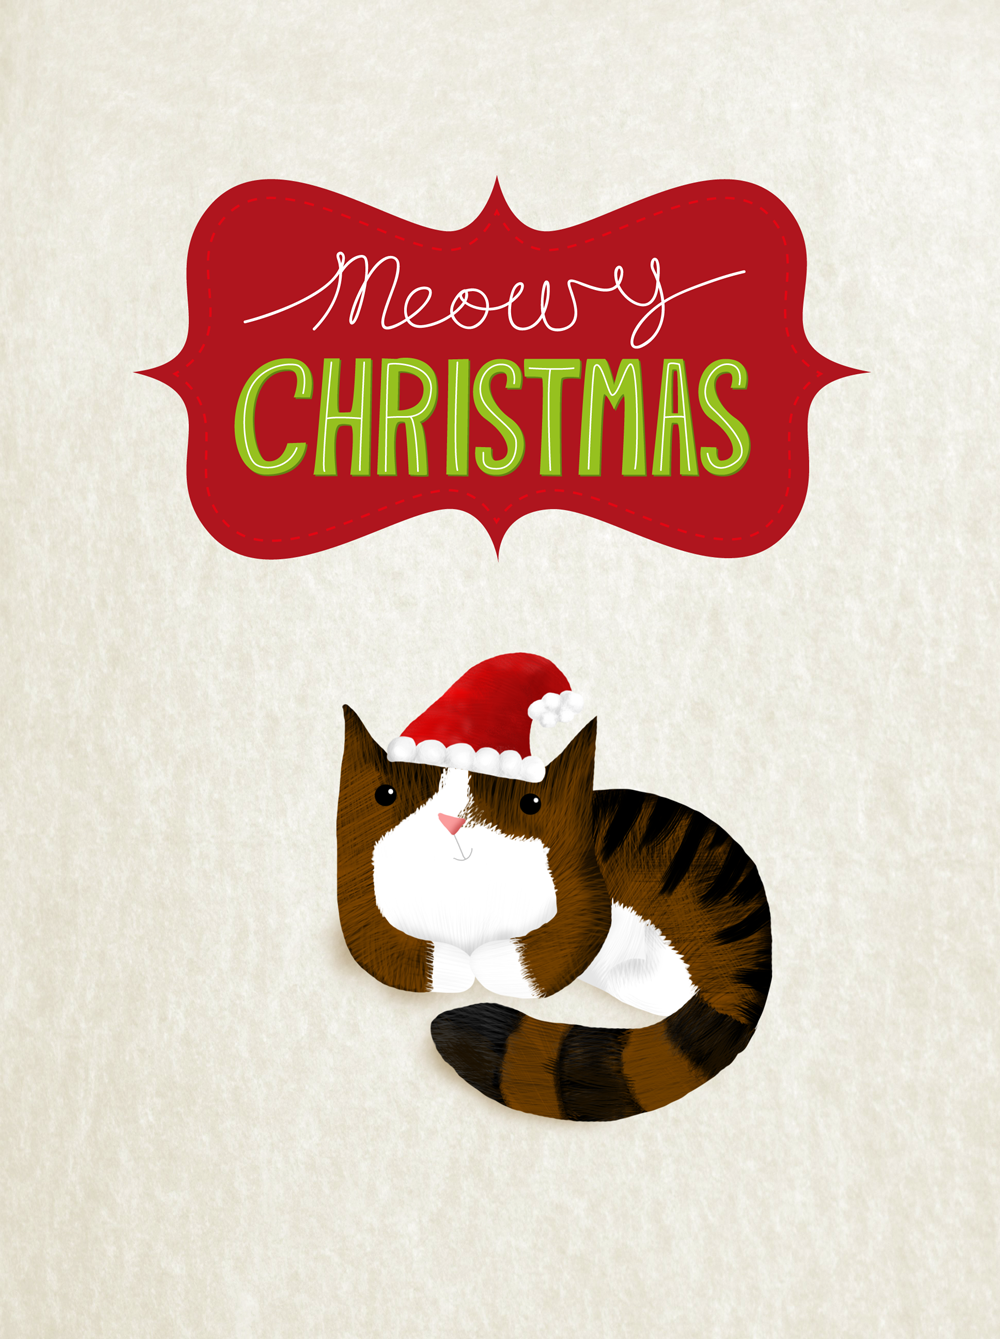 Meowy Christmas! from Simone Crowley